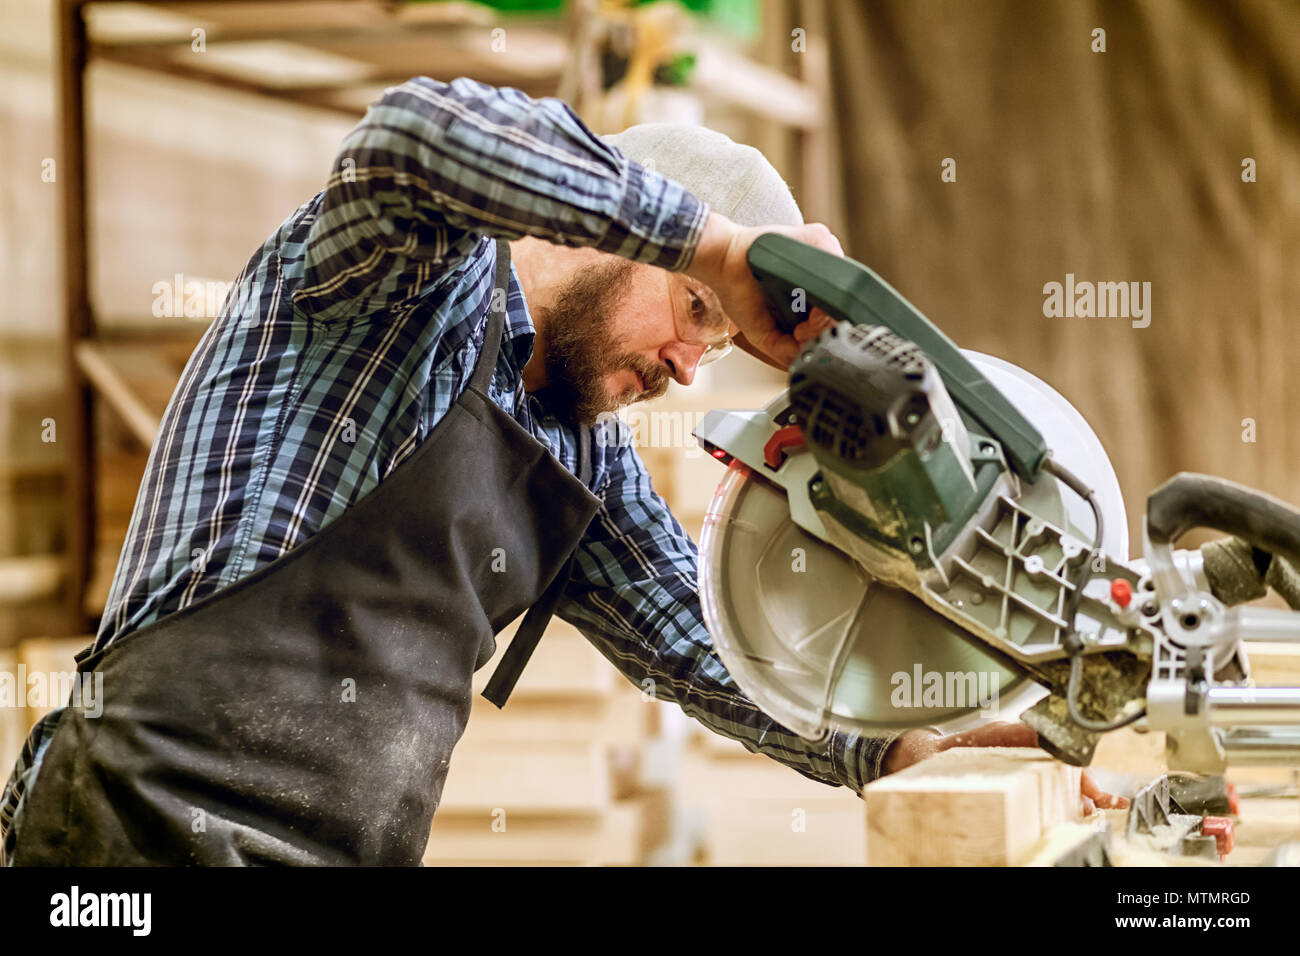 Carpenter work with circular saw for cutting boards, the man sawed bars, construction and home renovation, repair and construction tool - Stock Image